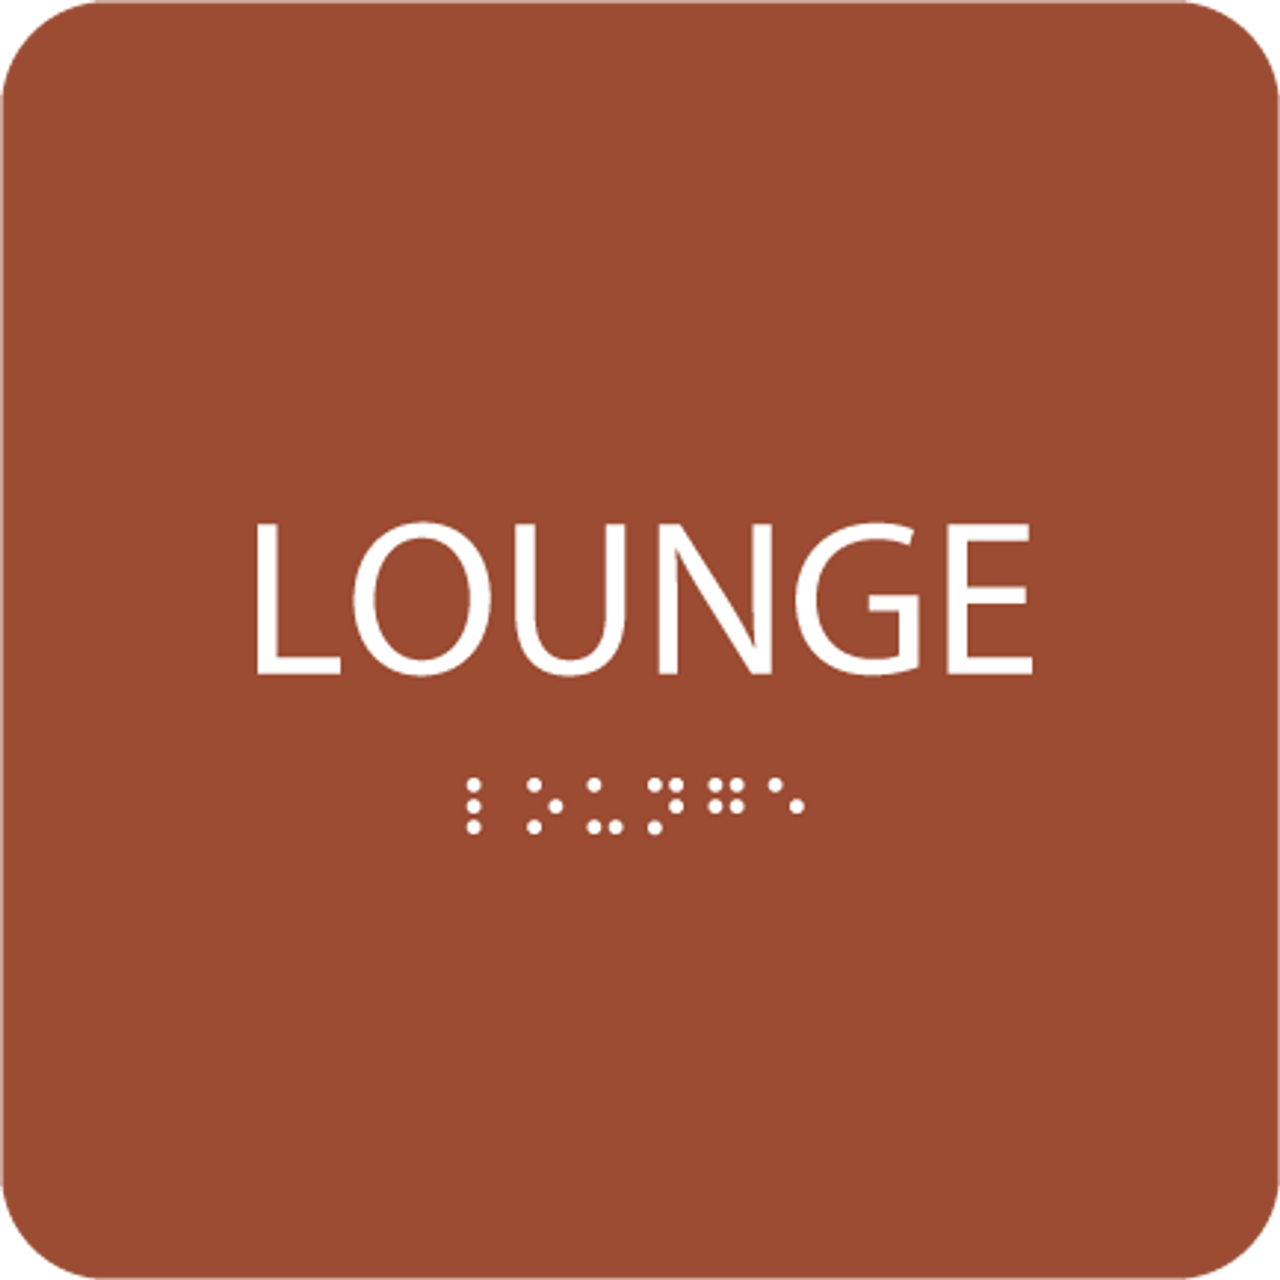 Orange Lounge ADA Sign